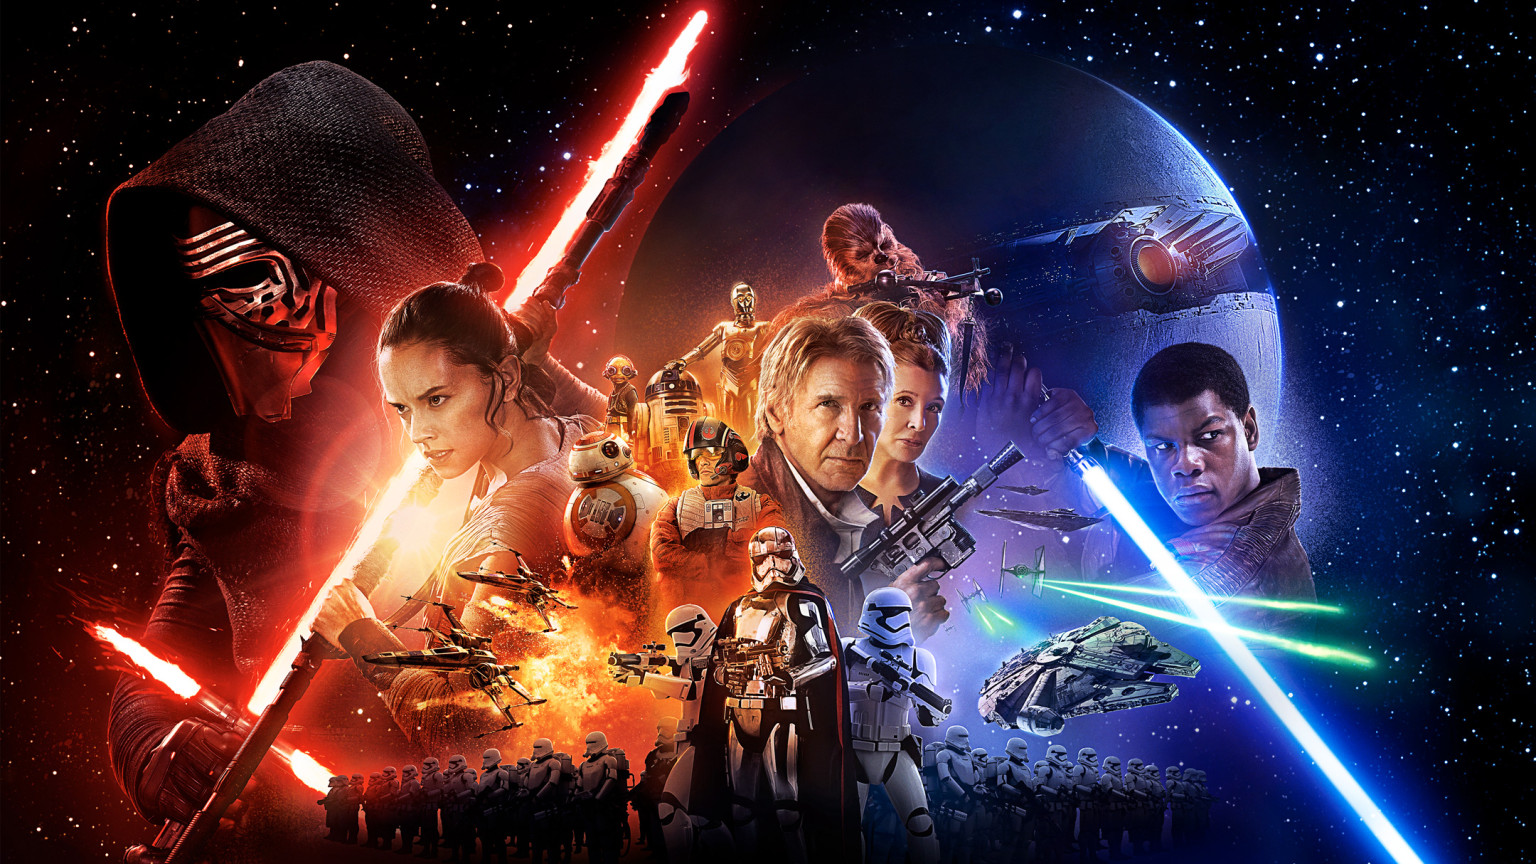 Star Wars 7 Buy Tickets Online For The Force Awakens